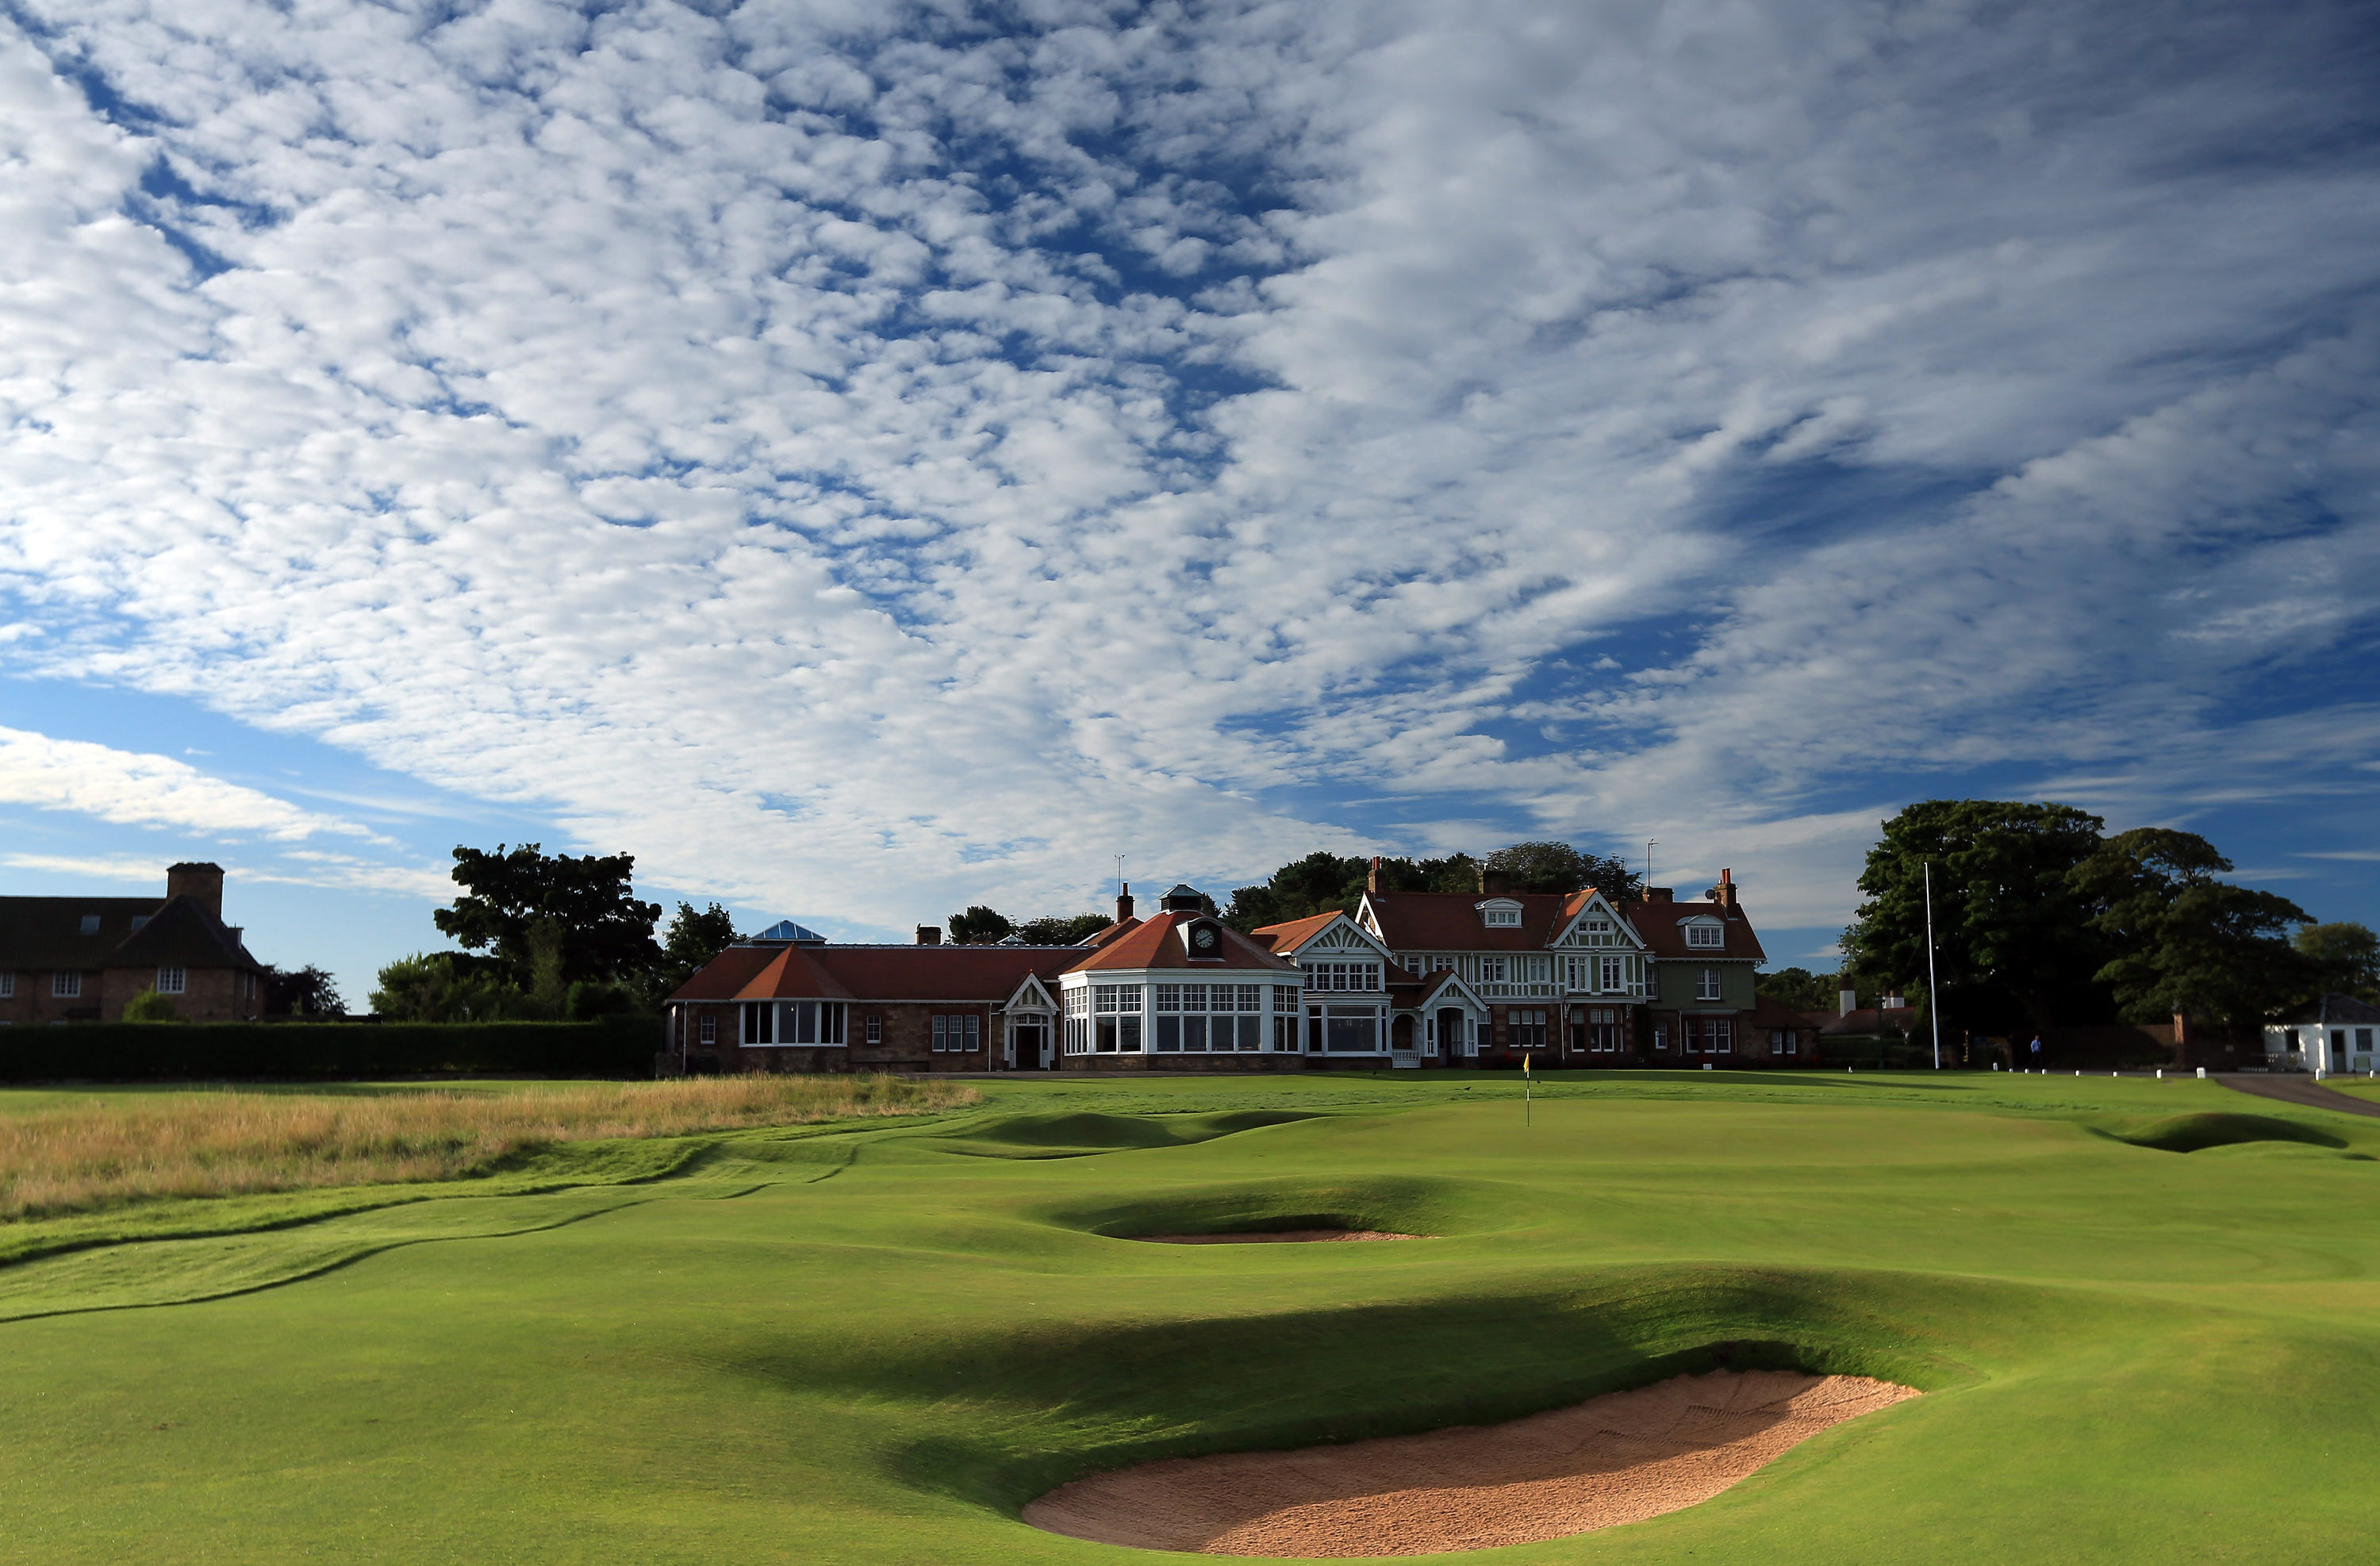 Muirfield golf club cover picture